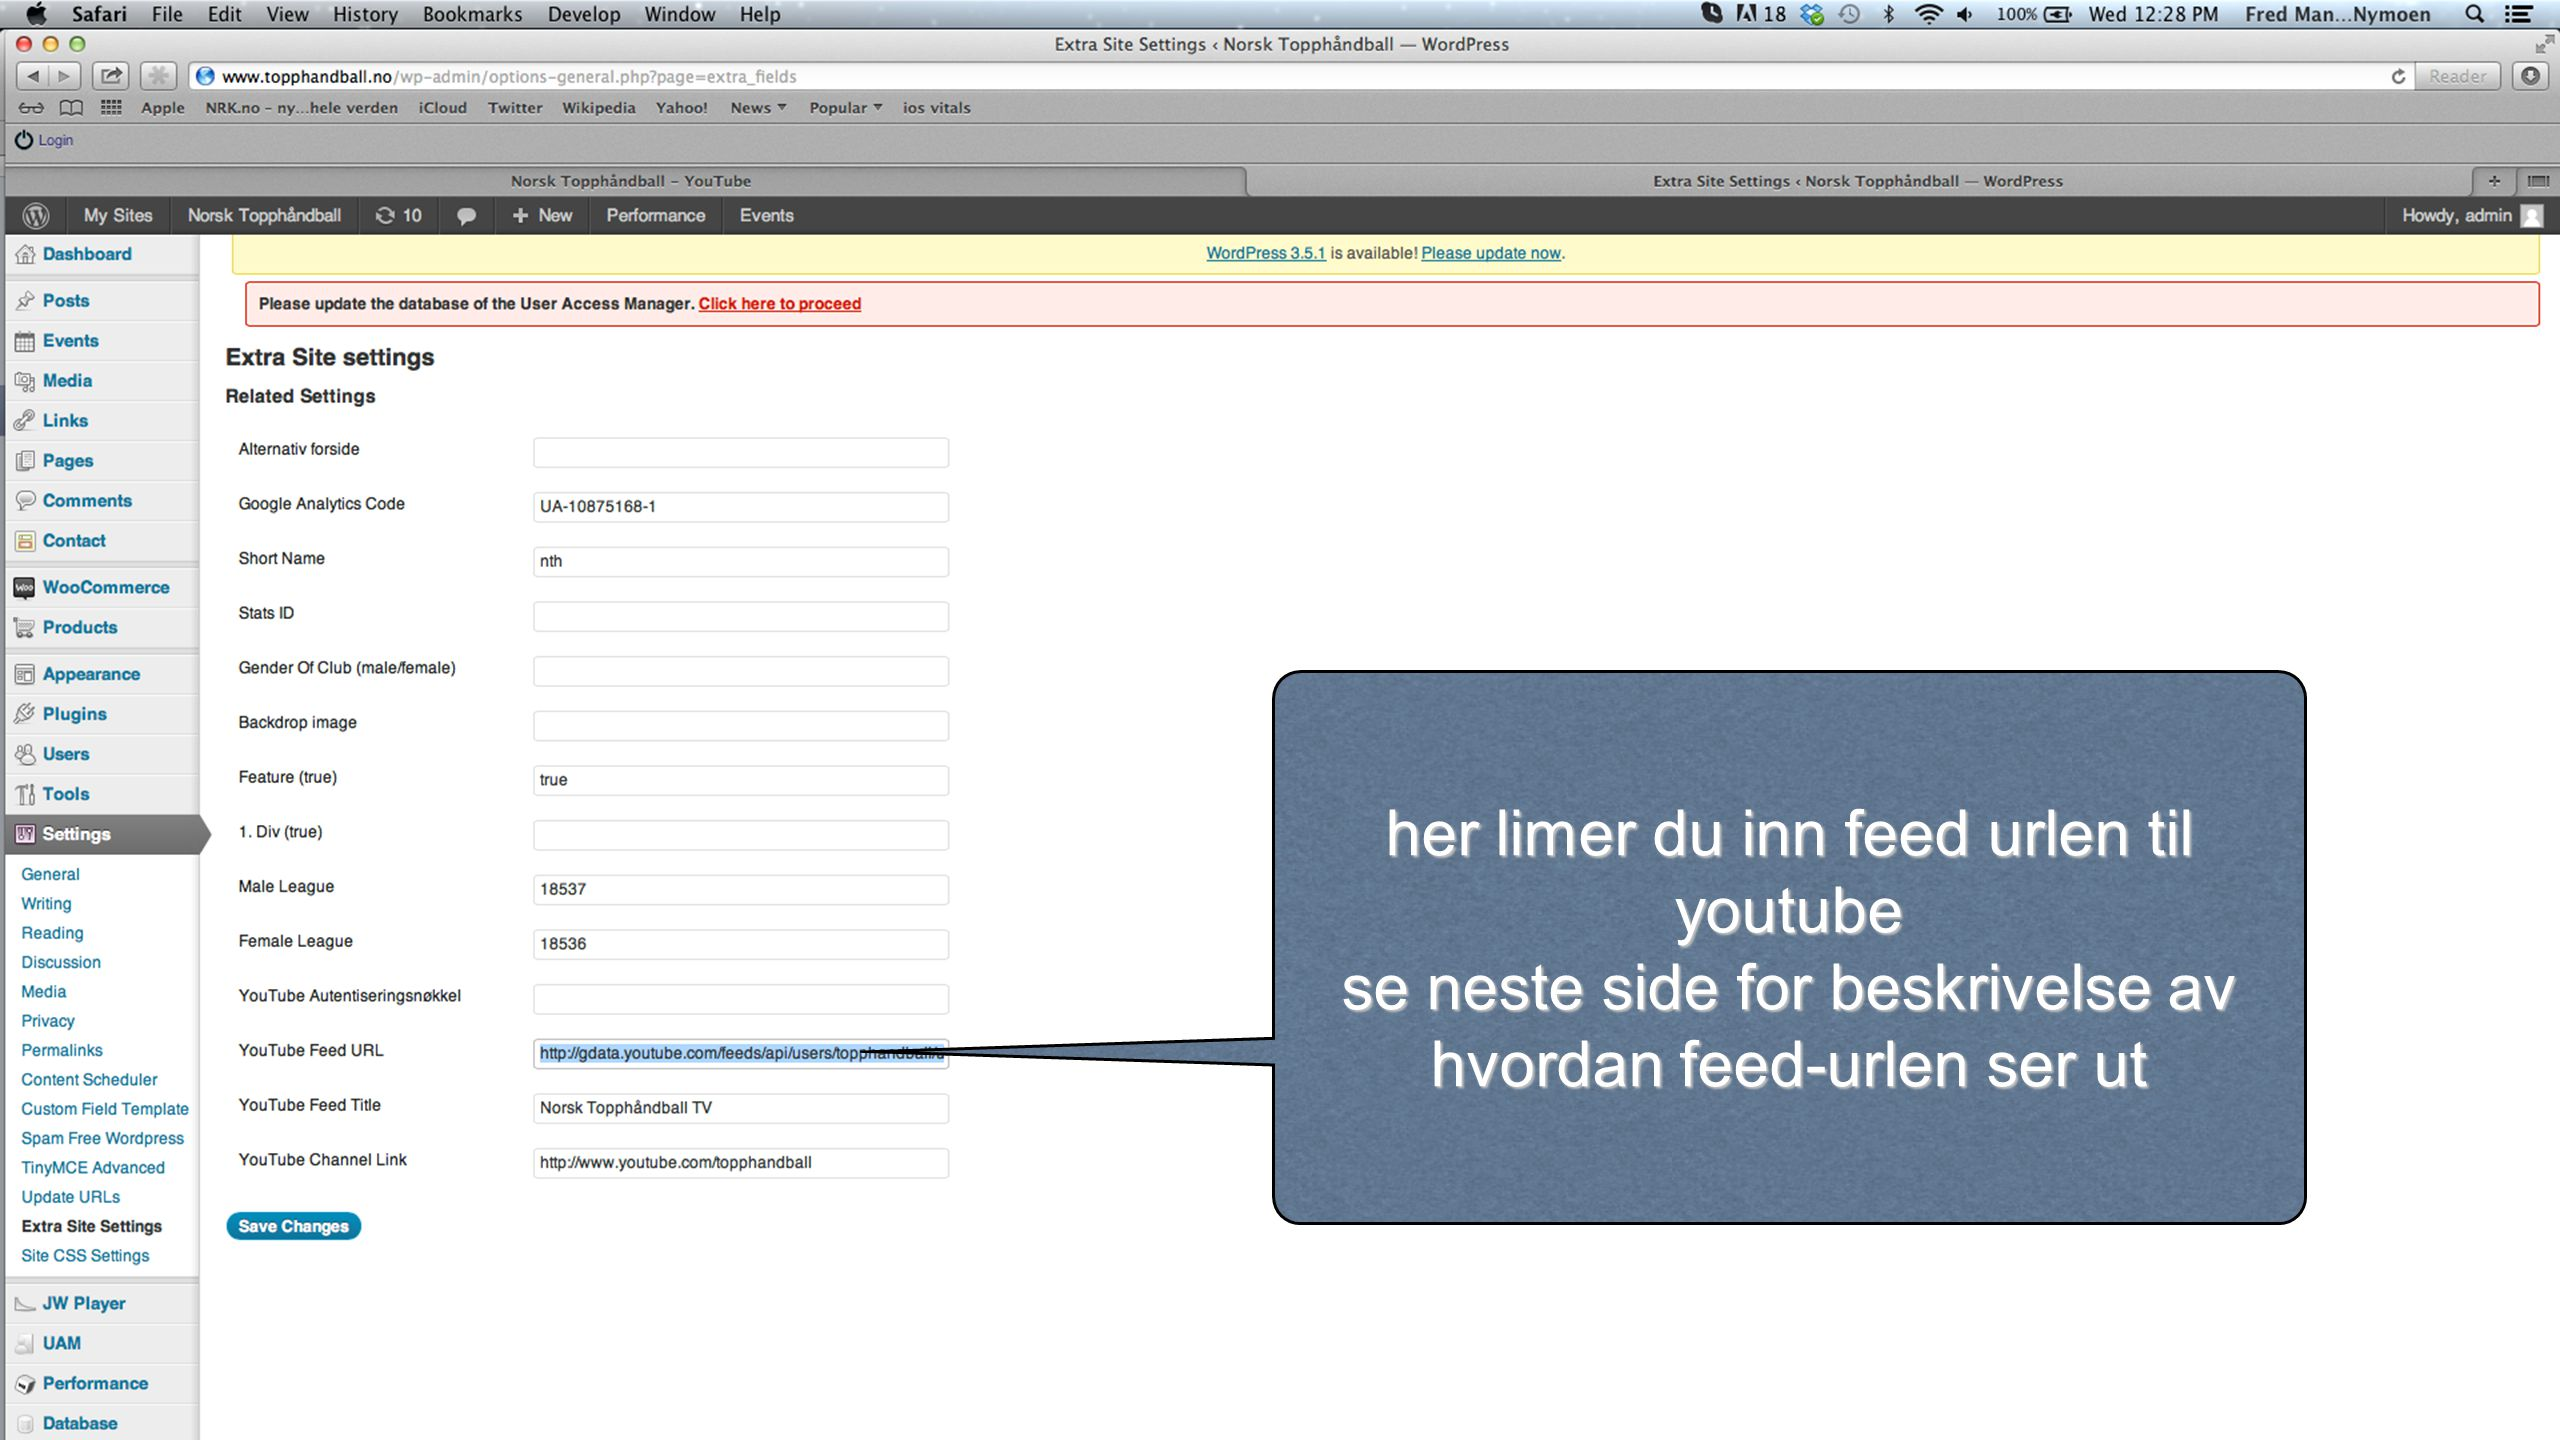 her limer du inn feed urlen til youtube se neste side for beskrivelse av hvordan feed-urlen ser ut